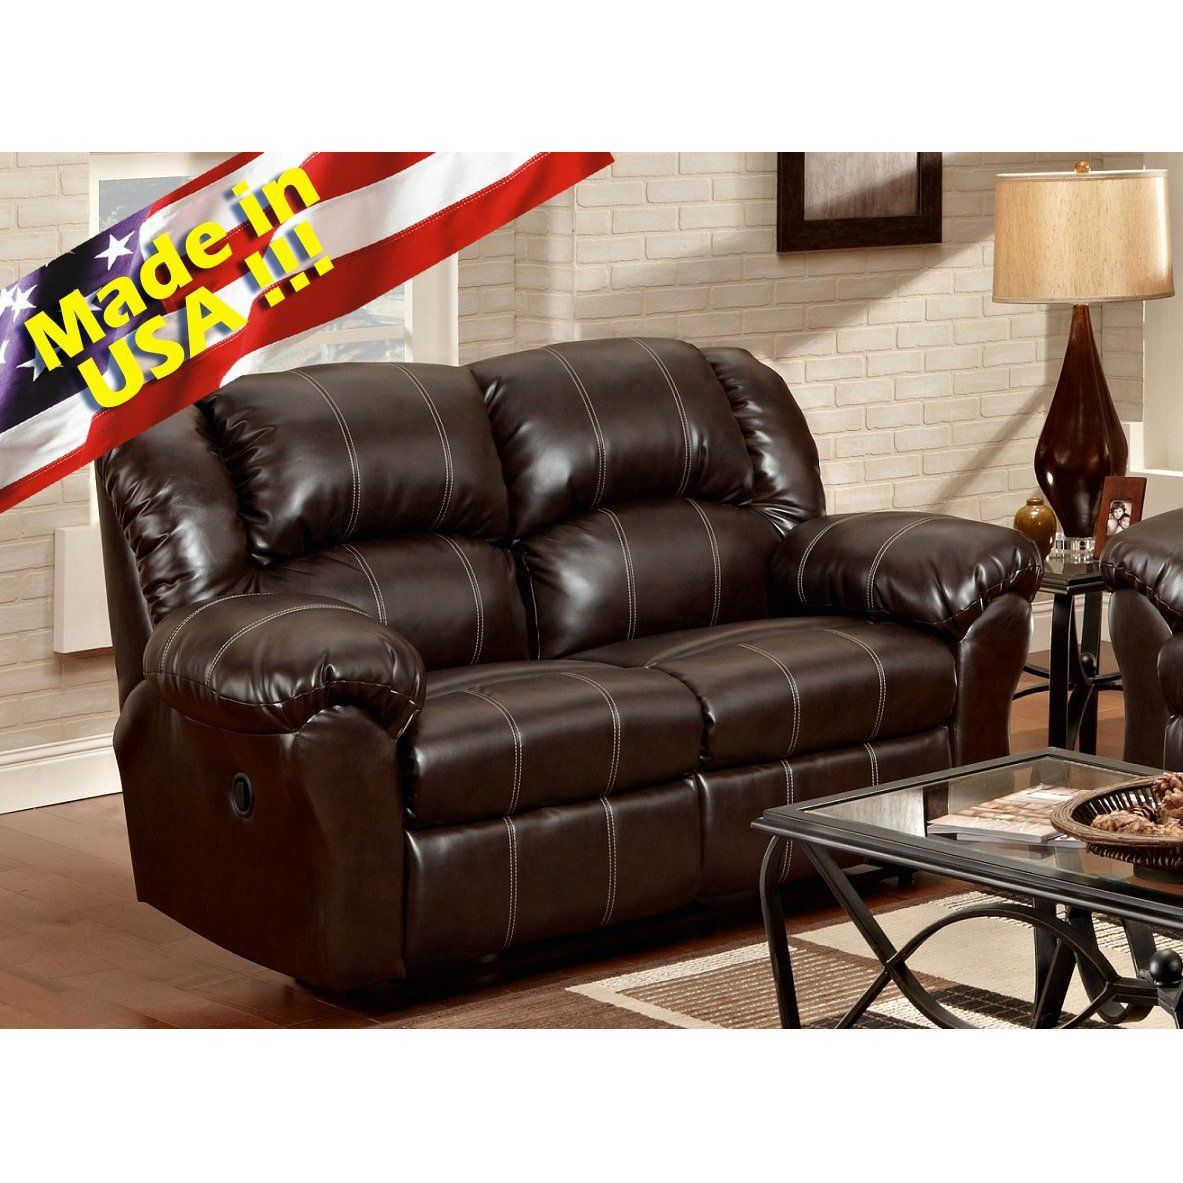 Furnituremaxx Dual Reclining Brown Leather Living Room Reclining Loveseat Made In Usa Loveseats Chelsea Home Furniture Furniture Living Room Leather #usa #made #living #room #furniture